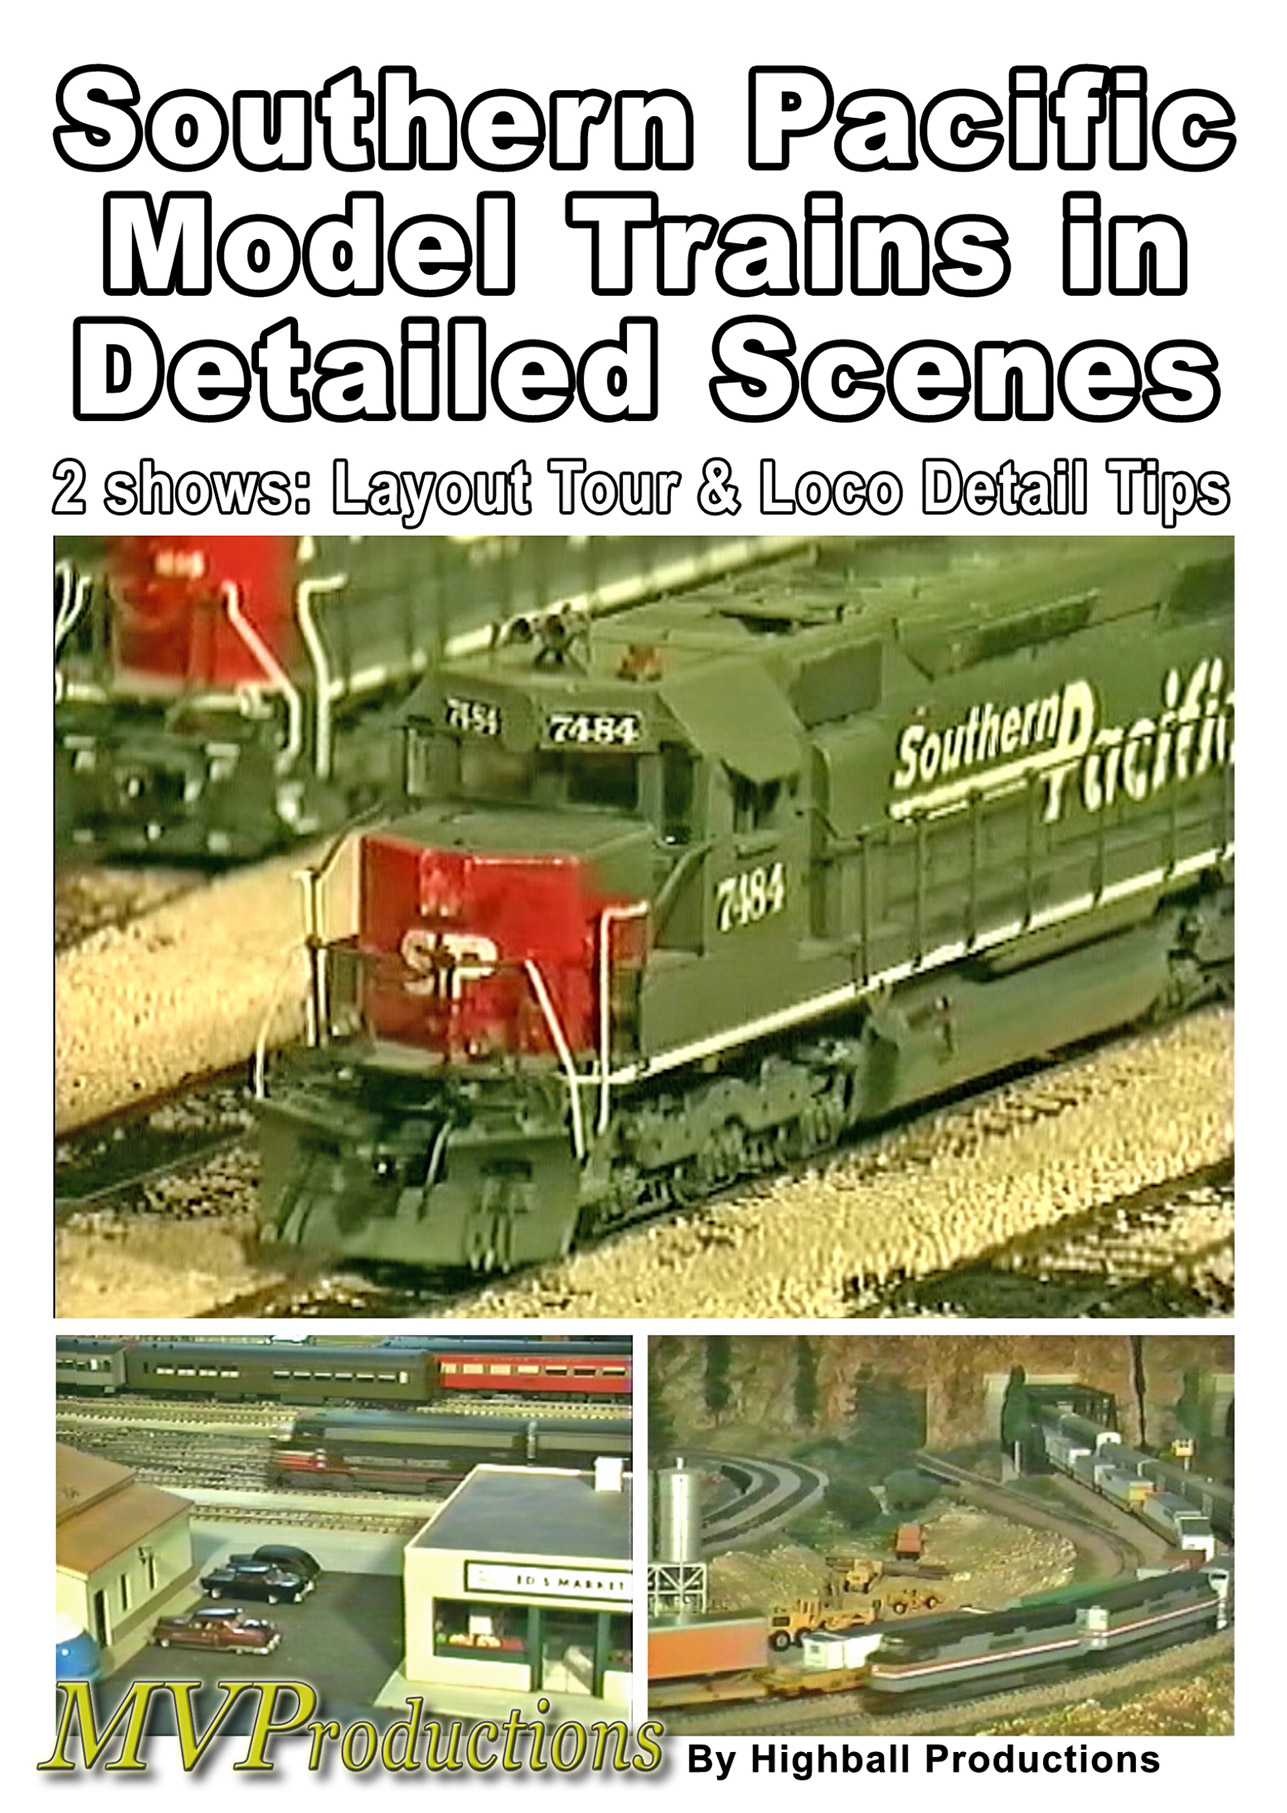 Southern Pacific Model Trains in Detailed Scenes Train Video Midwest Video Productions MVMRC 601577880059